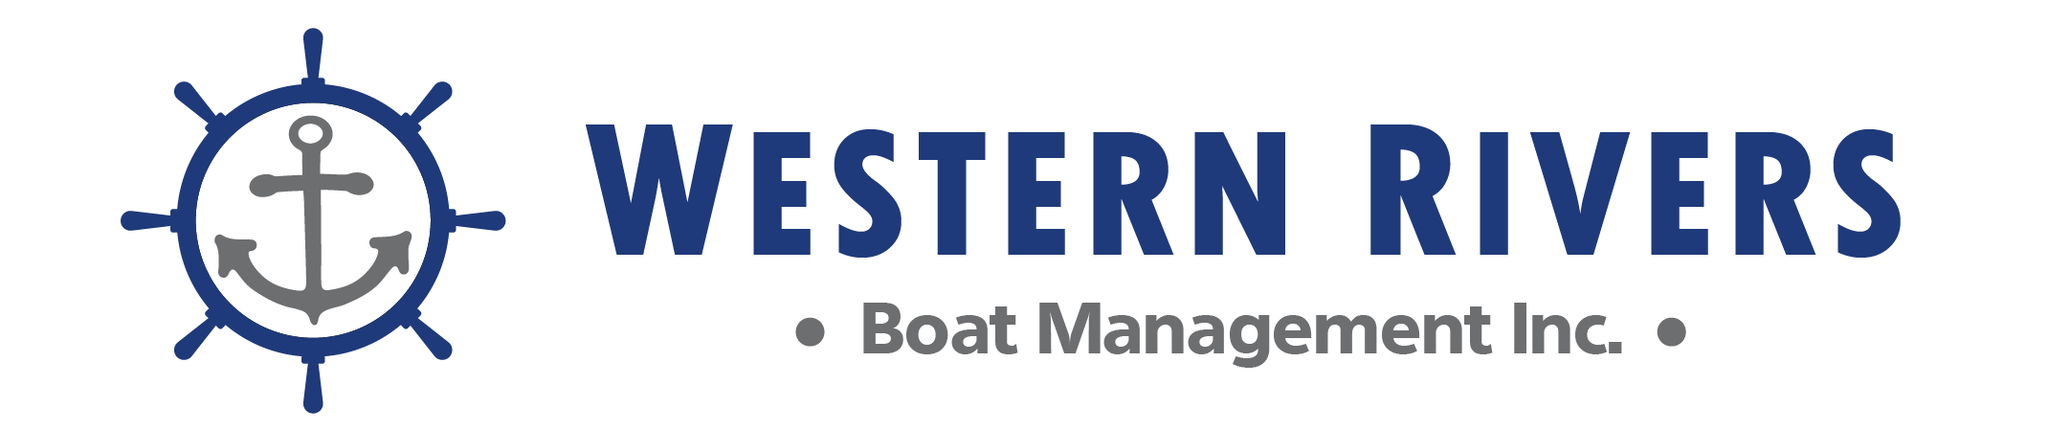 Western Rivers Boat Management